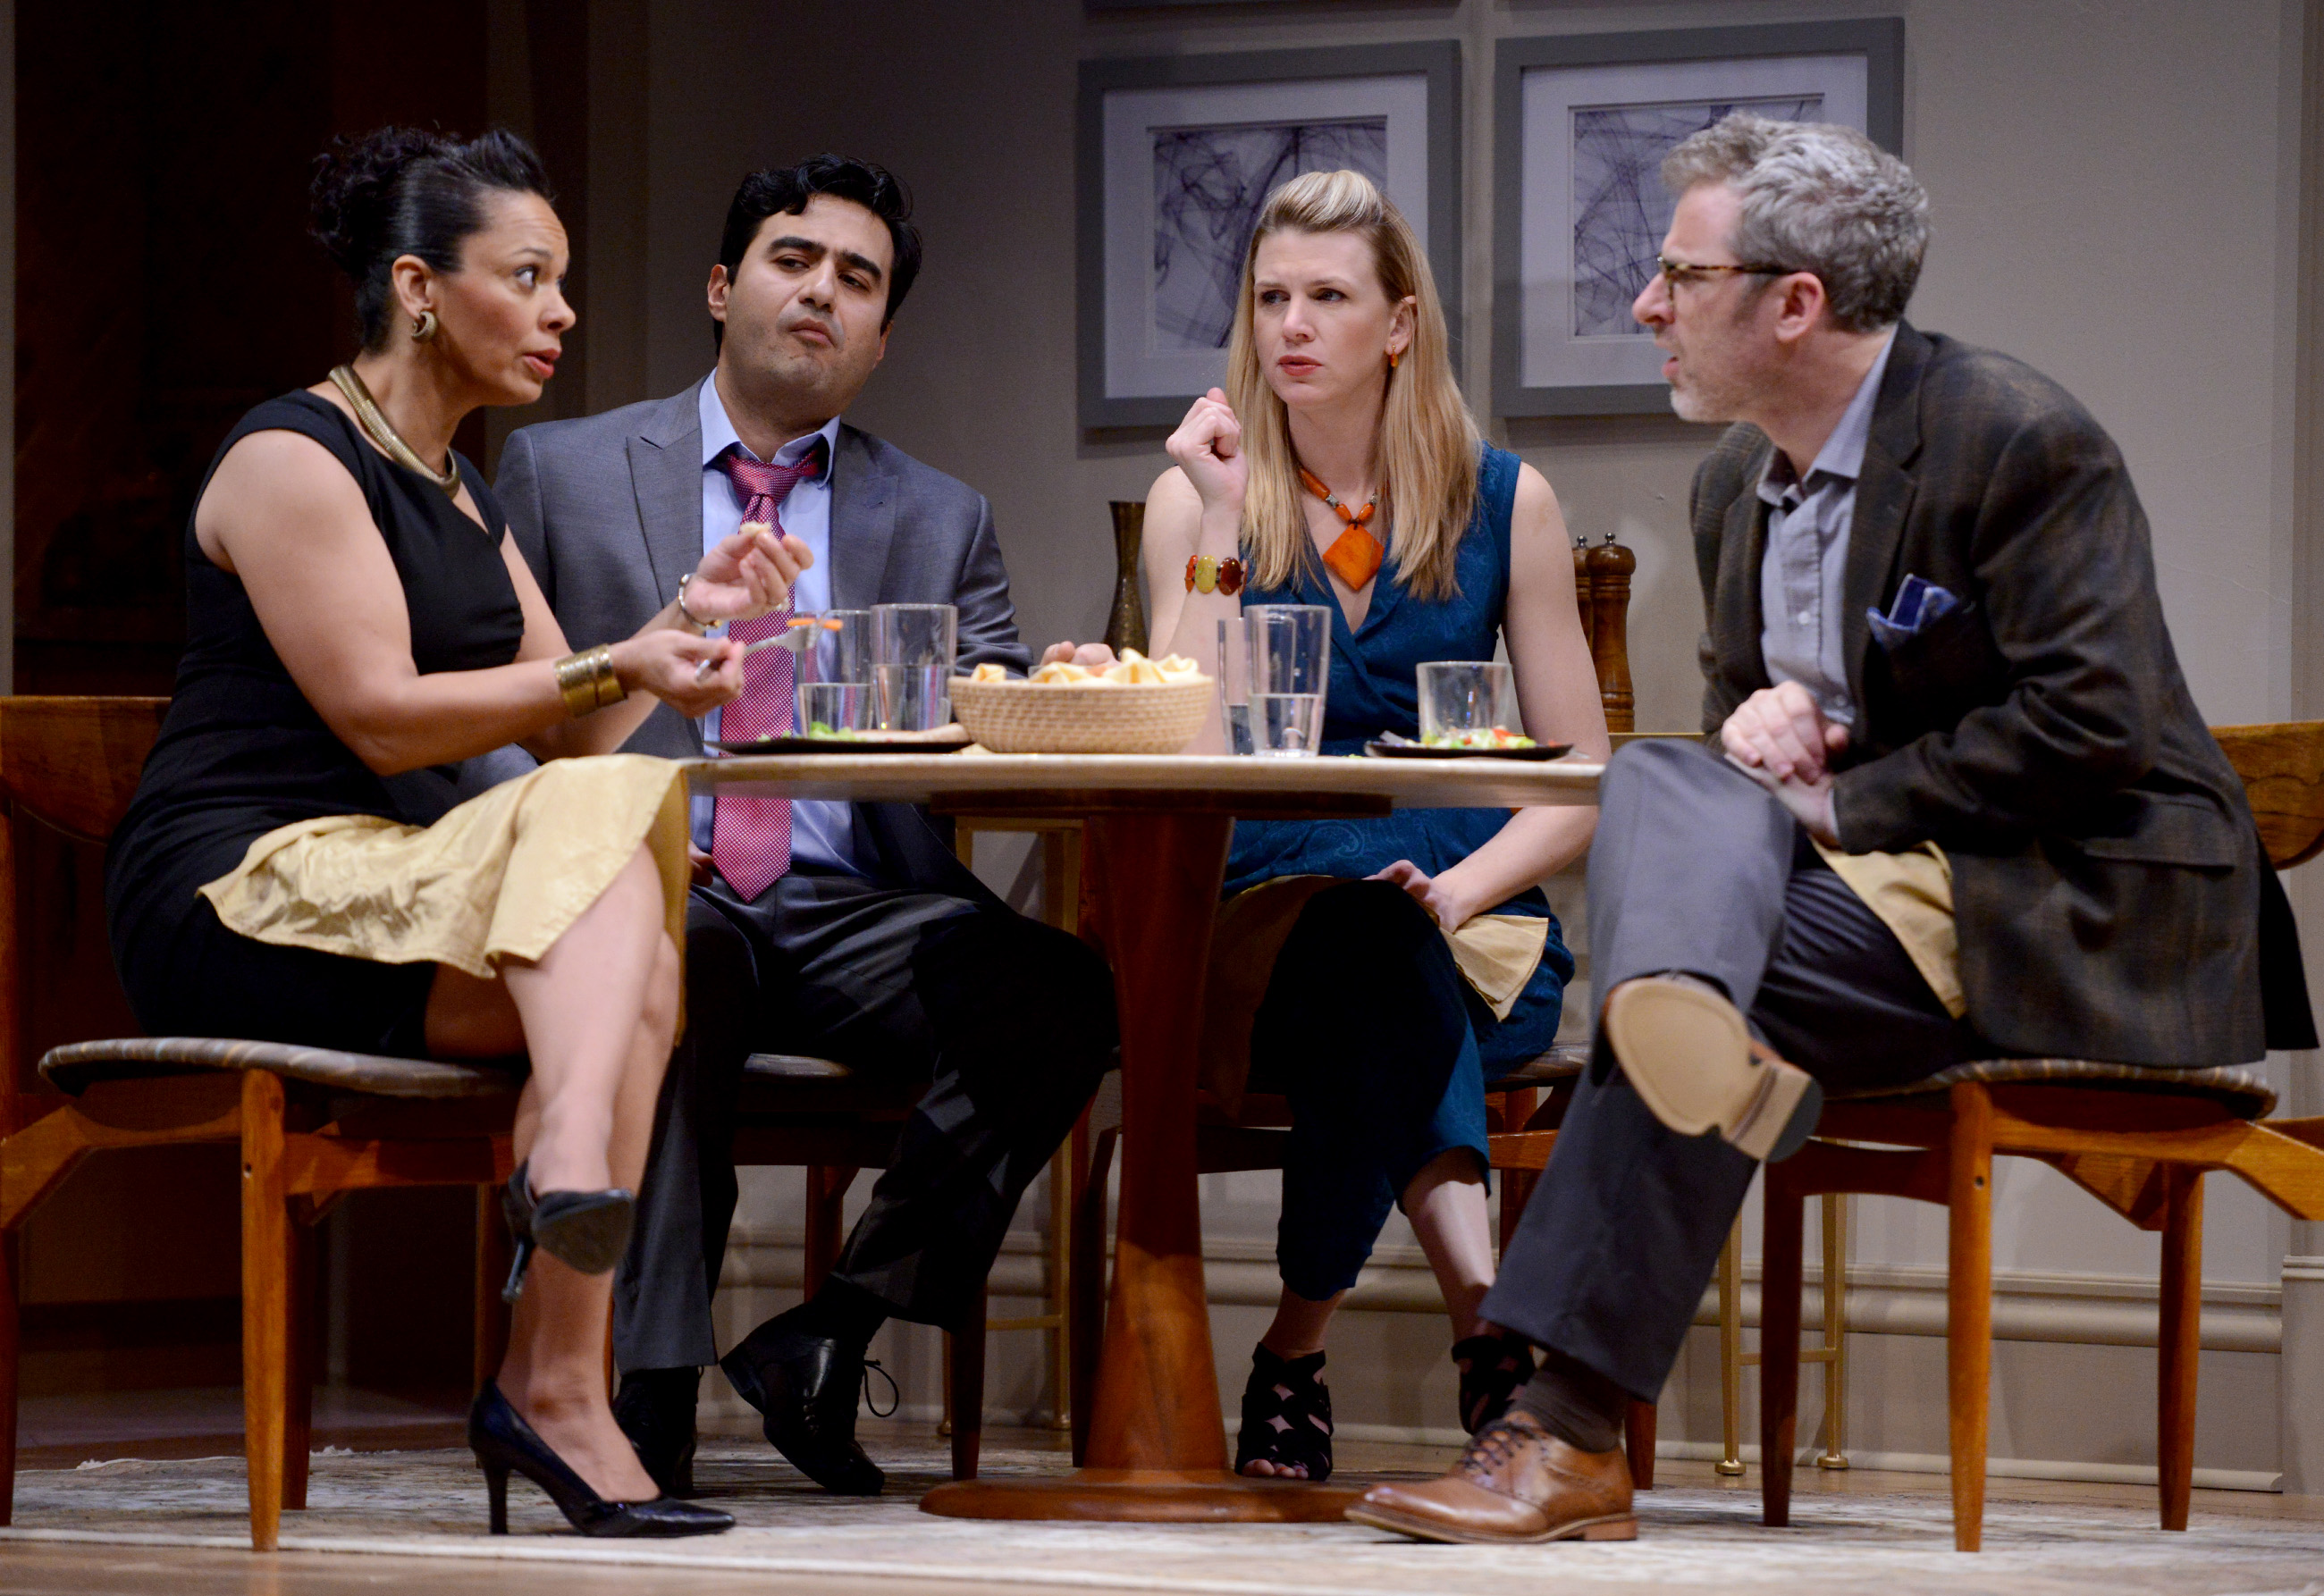 It's not a real dinner party until the knives come out. Preparing to tangle, left to right, are Jory (Nafeesa Monroe), hosts Amir and Emily (Fajer Kaisi, Lisa Velten Smith), and Isaac (Ryan McCarthy).